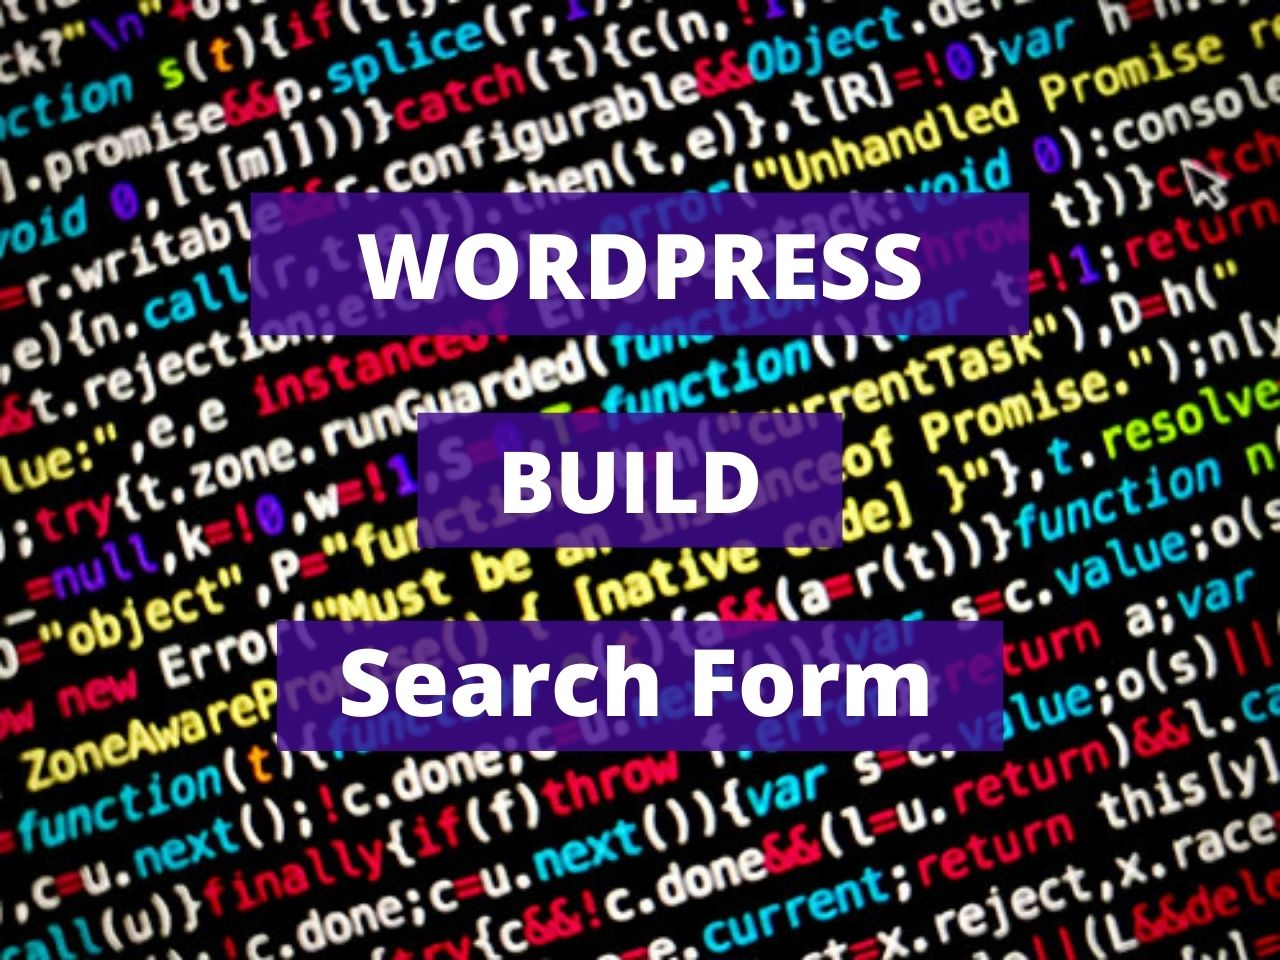 Wordpress Build Search Form